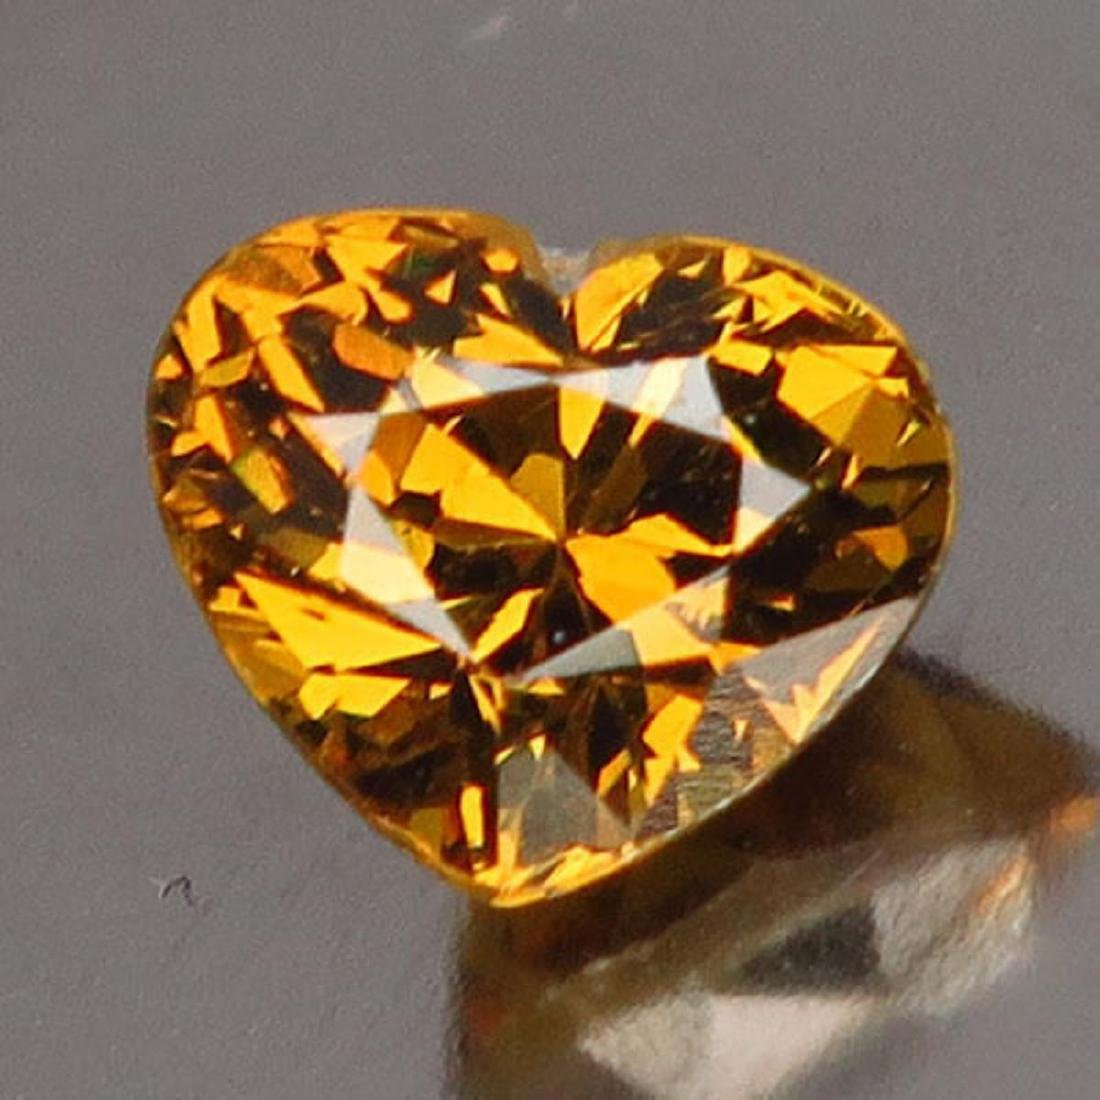 Natural Golden Mali Garnet Heart 1.22 Cts - VVS